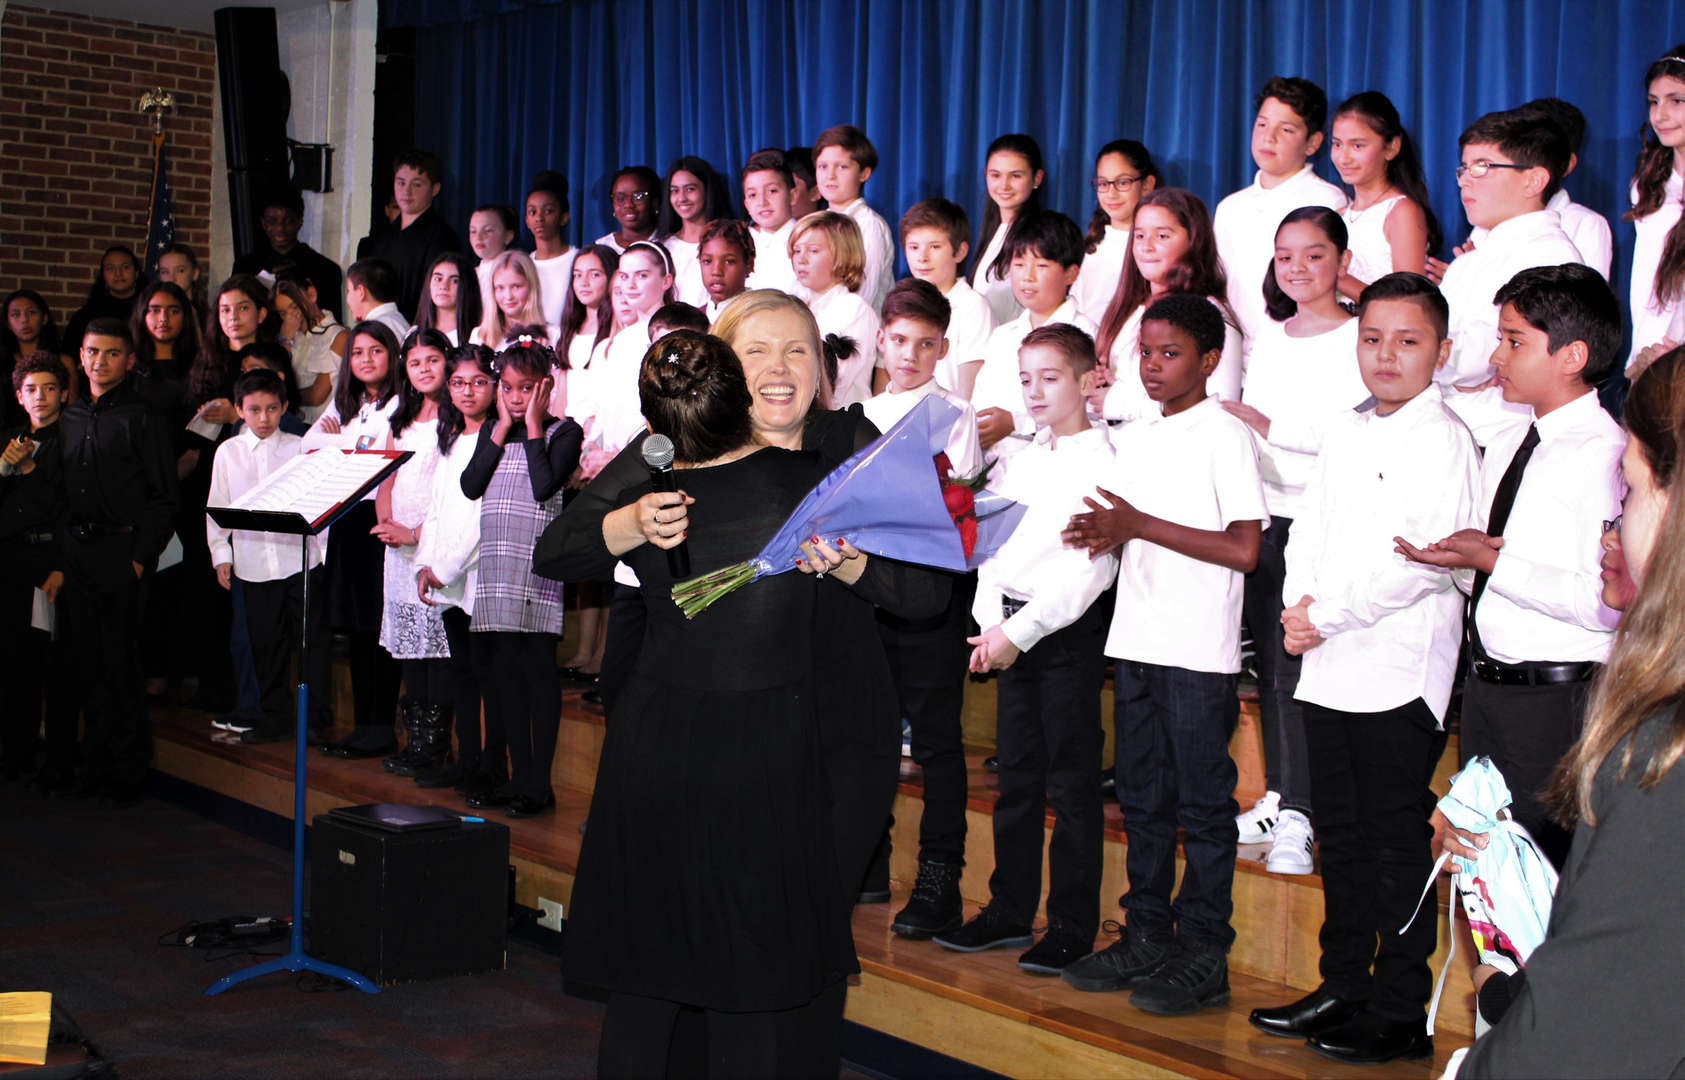 The students thank their teachers, Sheila DePaola and Michael Murray, at the end of the Winter Concert.